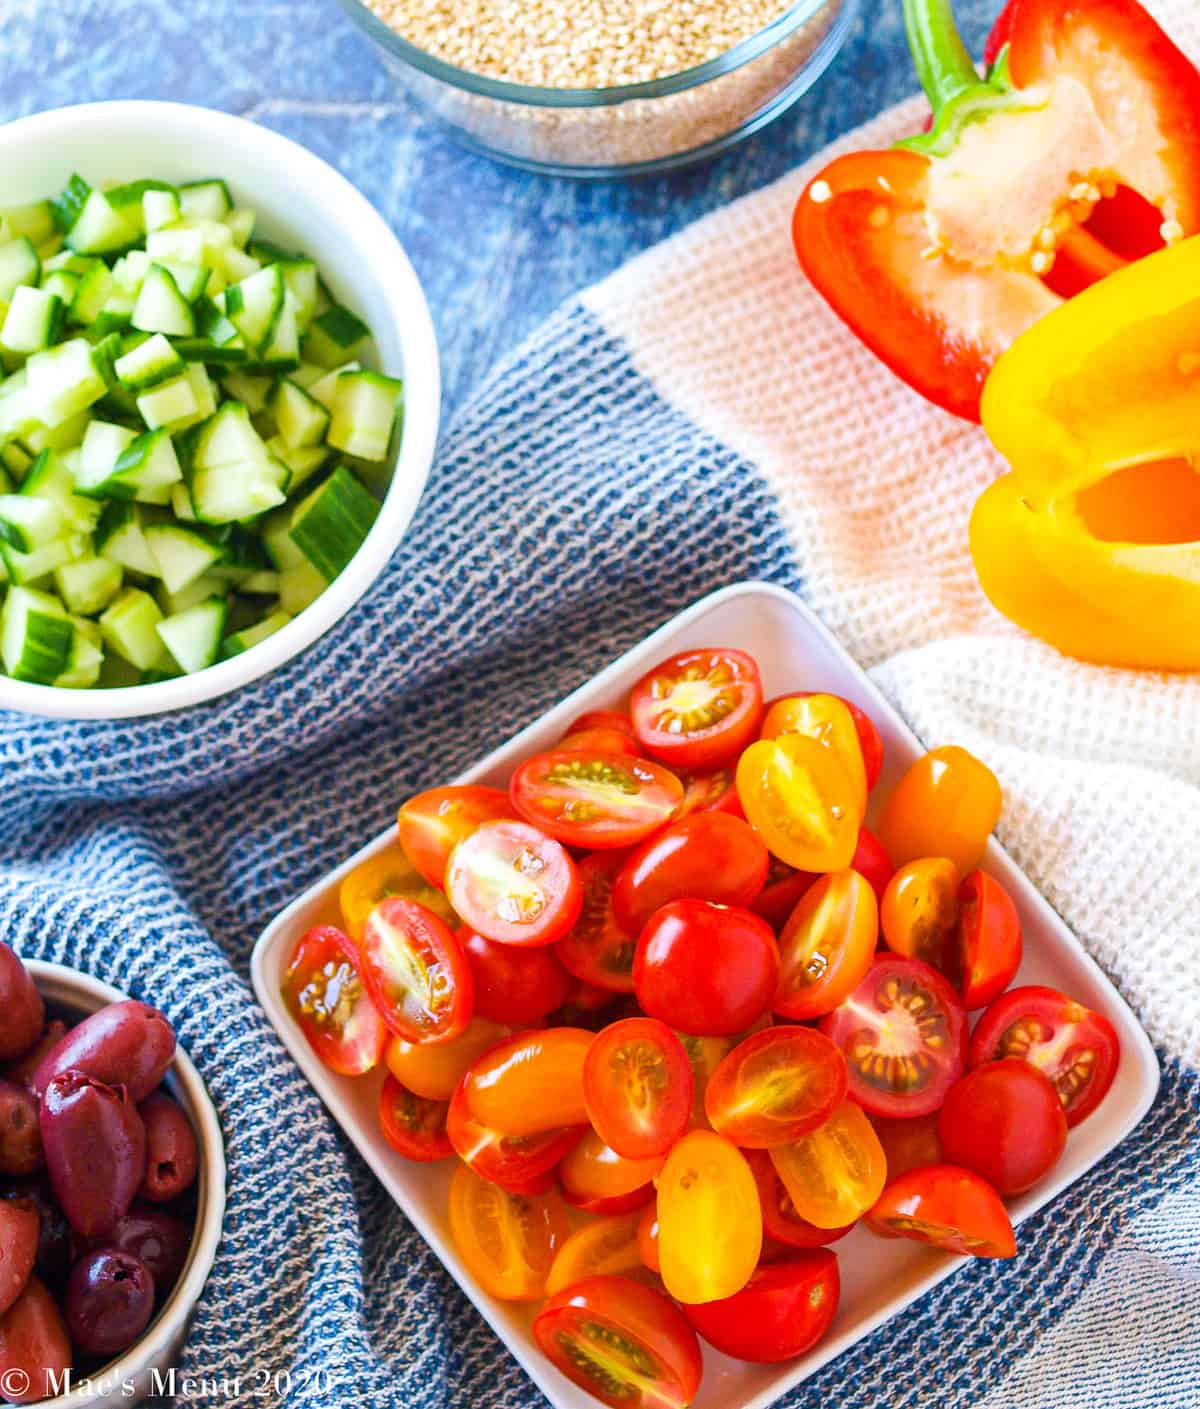 Small plates and bowls of sliced tomatoes, chopped cucumber, kalamata olives, and two sweet peppers cut in half